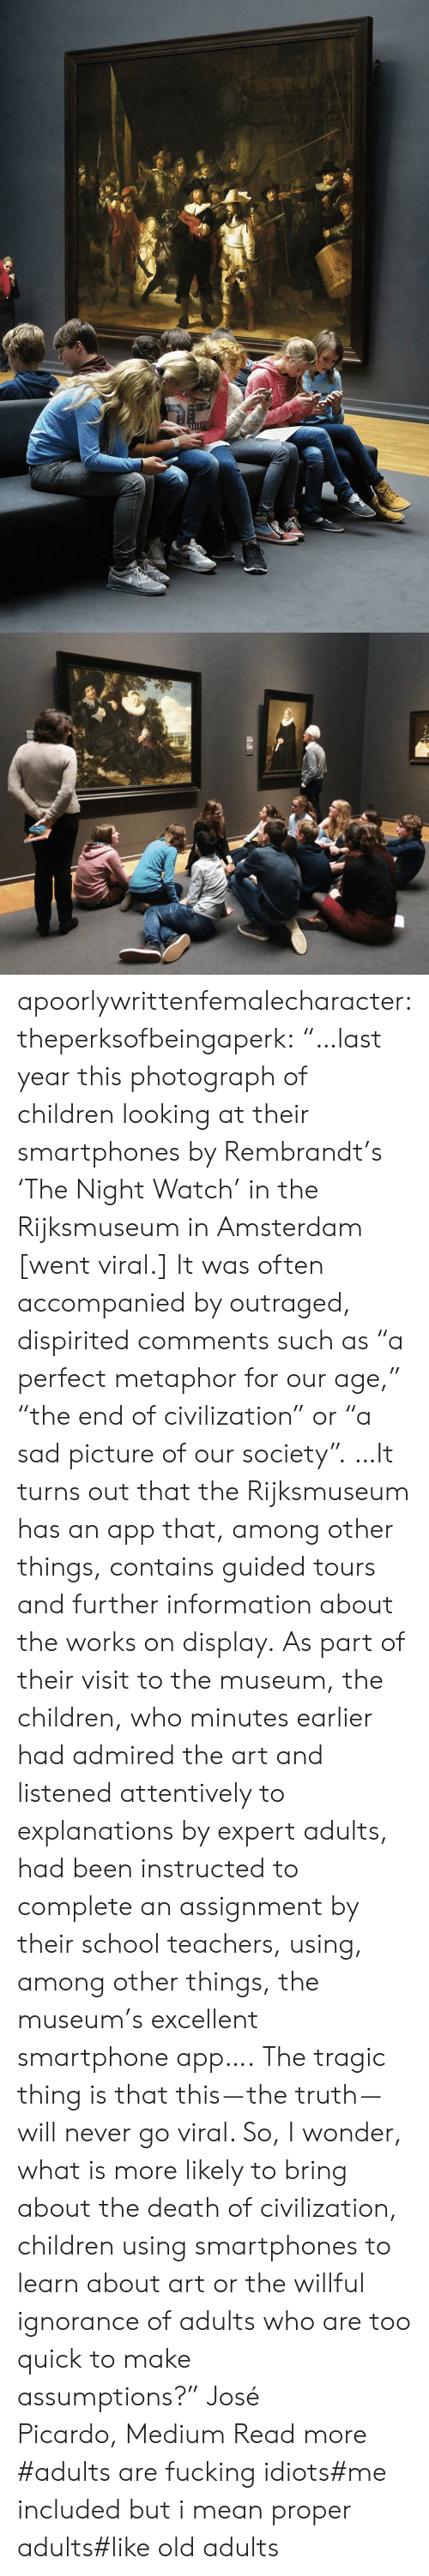 "Apple, Children, and Fucking: apoorlywrittenfemalecharacter: theperksofbeingaperk:  ""…last year this photograph of children looking at their smartphones by Rembrandt's 'The Night Watch' in the Rijksmuseum in Amsterdam [went viral.] It was often accompanied by outraged, dispirited comments such as ""a perfect metaphor for our age,"" ""the end of civilization"" or ""a sad picture of our society"". …It turns out that the Rijksmuseum has an app that, among other things, contains guided tours and further information about the works on display. As part of their visit to the museum, the children, who minutes earlier had admired the art and listened attentively to explanations by expert adults, had been instructed to complete an assignment by their school teachers, using, among other things, the museum's excellent smartphone app….   The tragic thing is that this — the truth — will never go viral. So, I wonder, what is more likely to bring about the death of civilization, children using smartphones to learn about art or the willful ignorance of adults who are too quick to make assumptions?"" José Picardo, Medium Read more    #adults are fucking idiots#me included but i mean proper adults#like old adults"